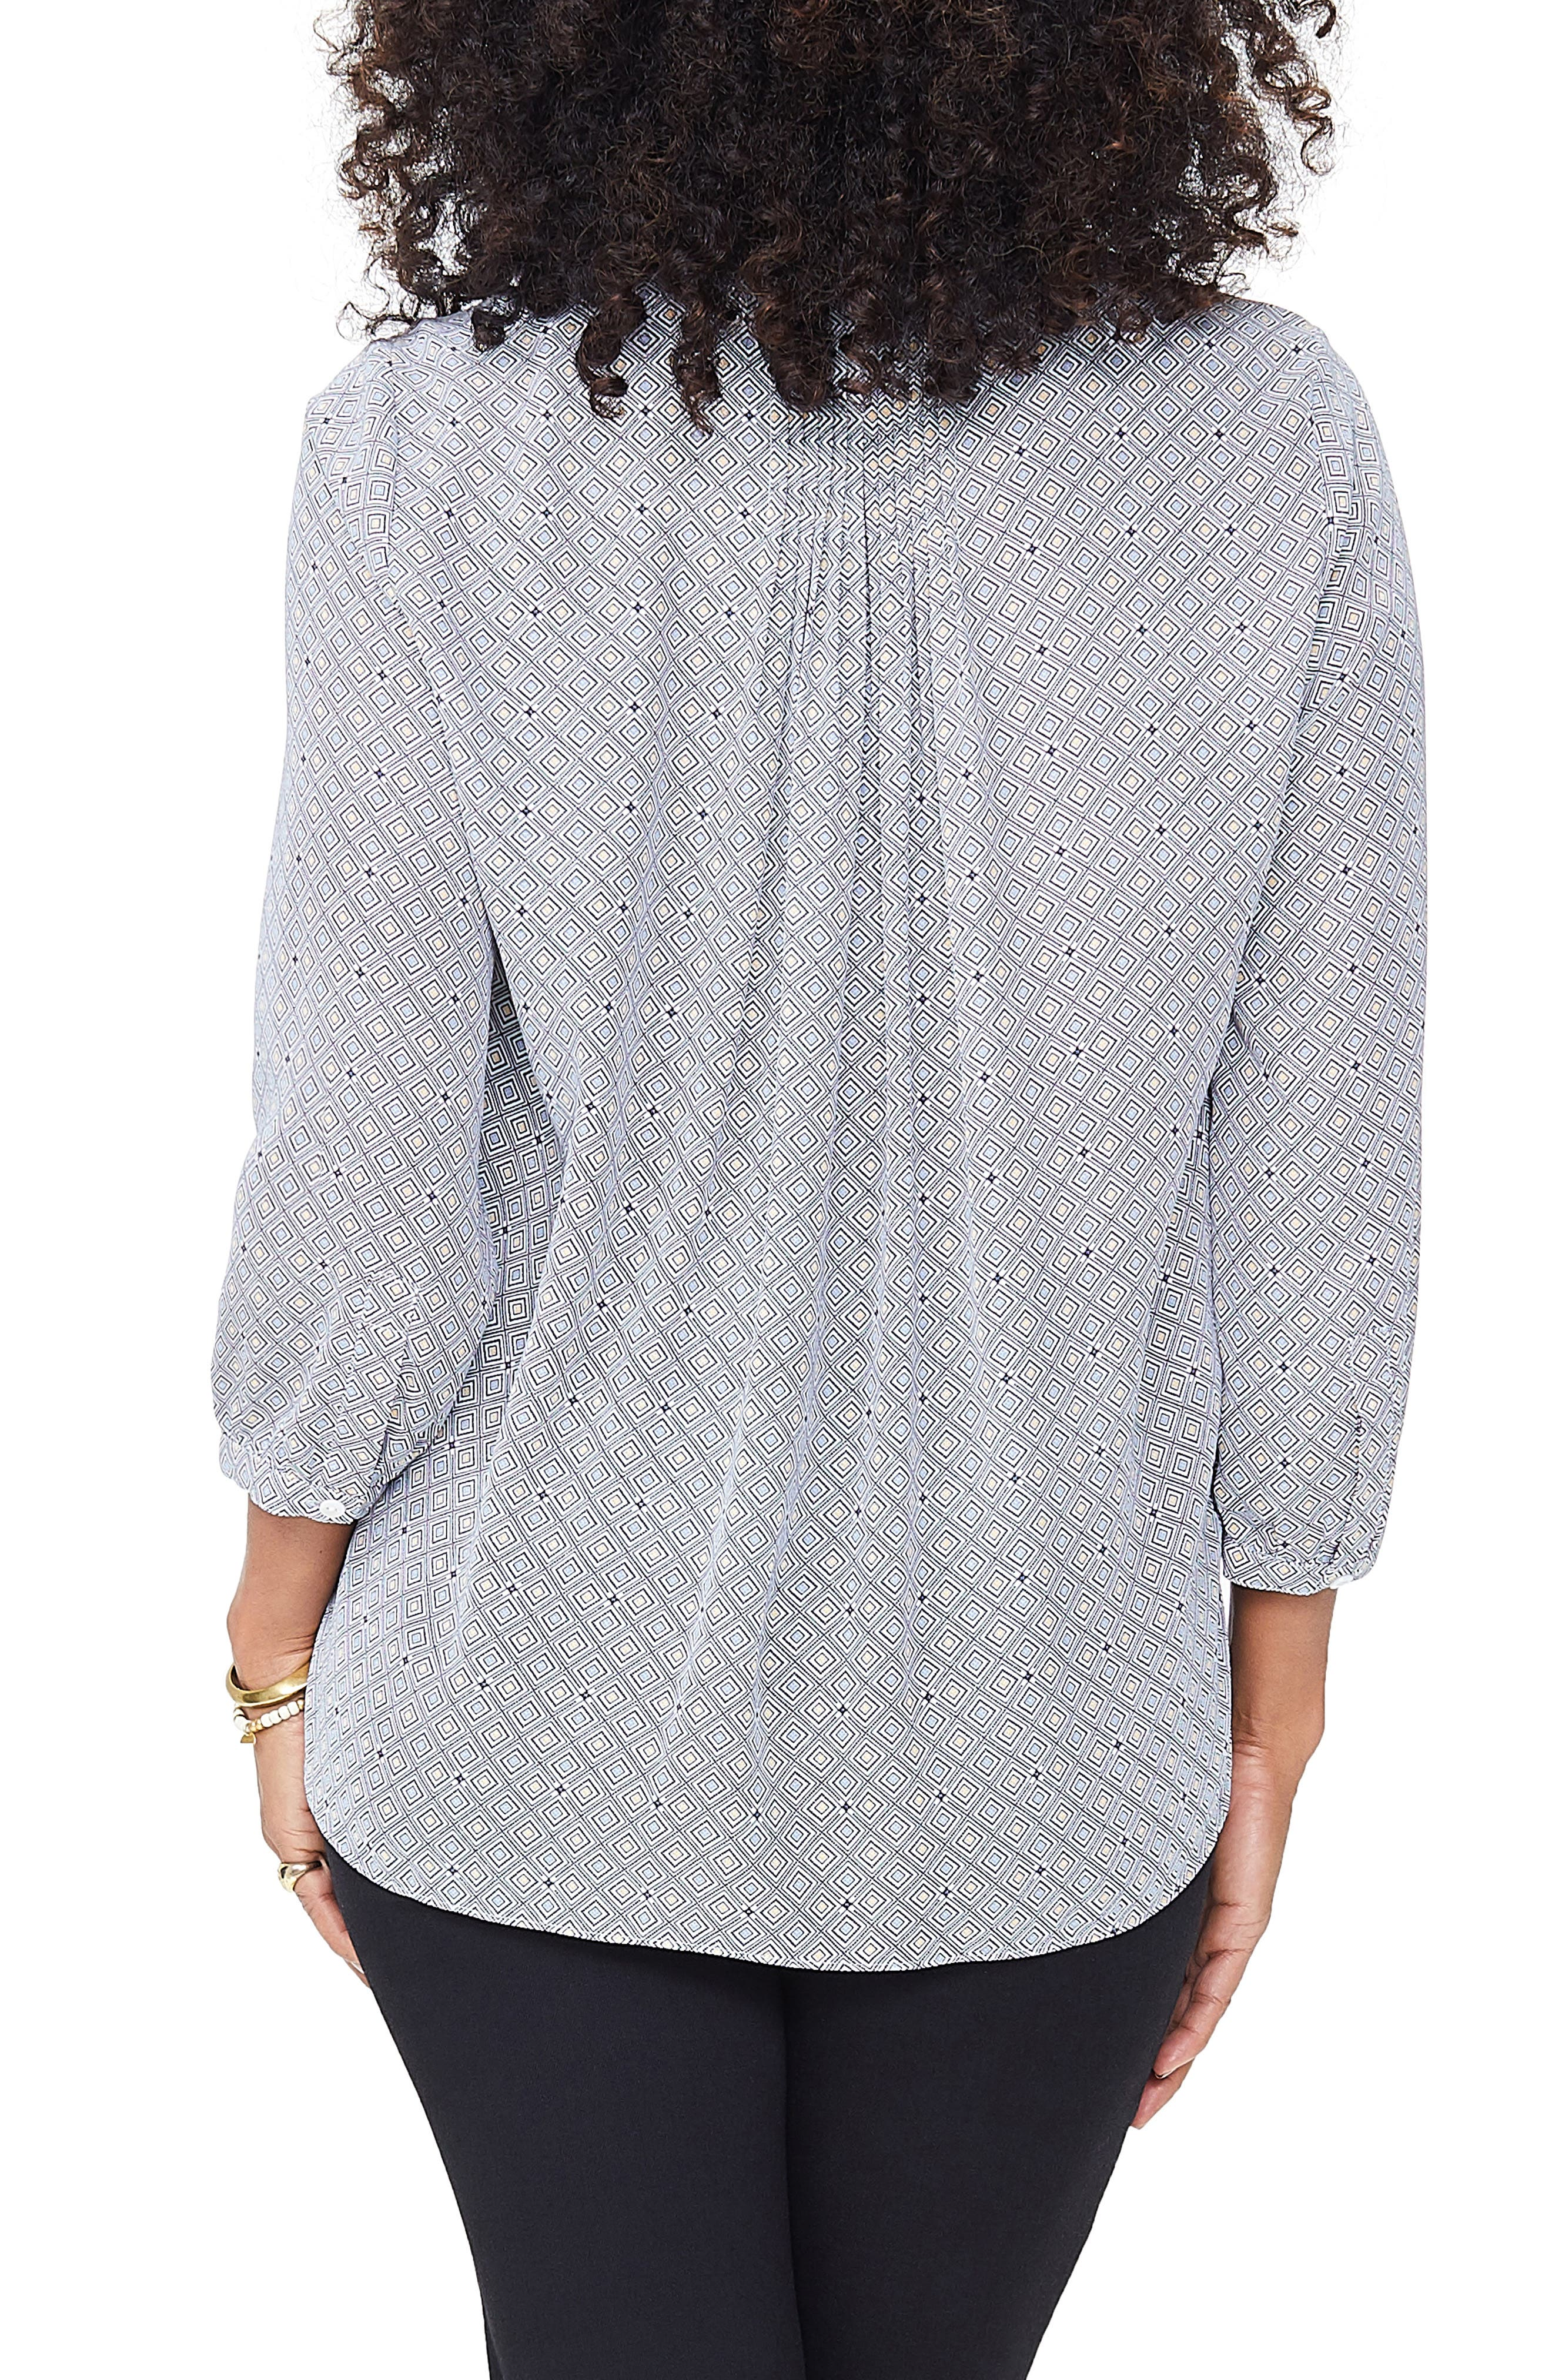 Banded Collar Shirt Nordstrom